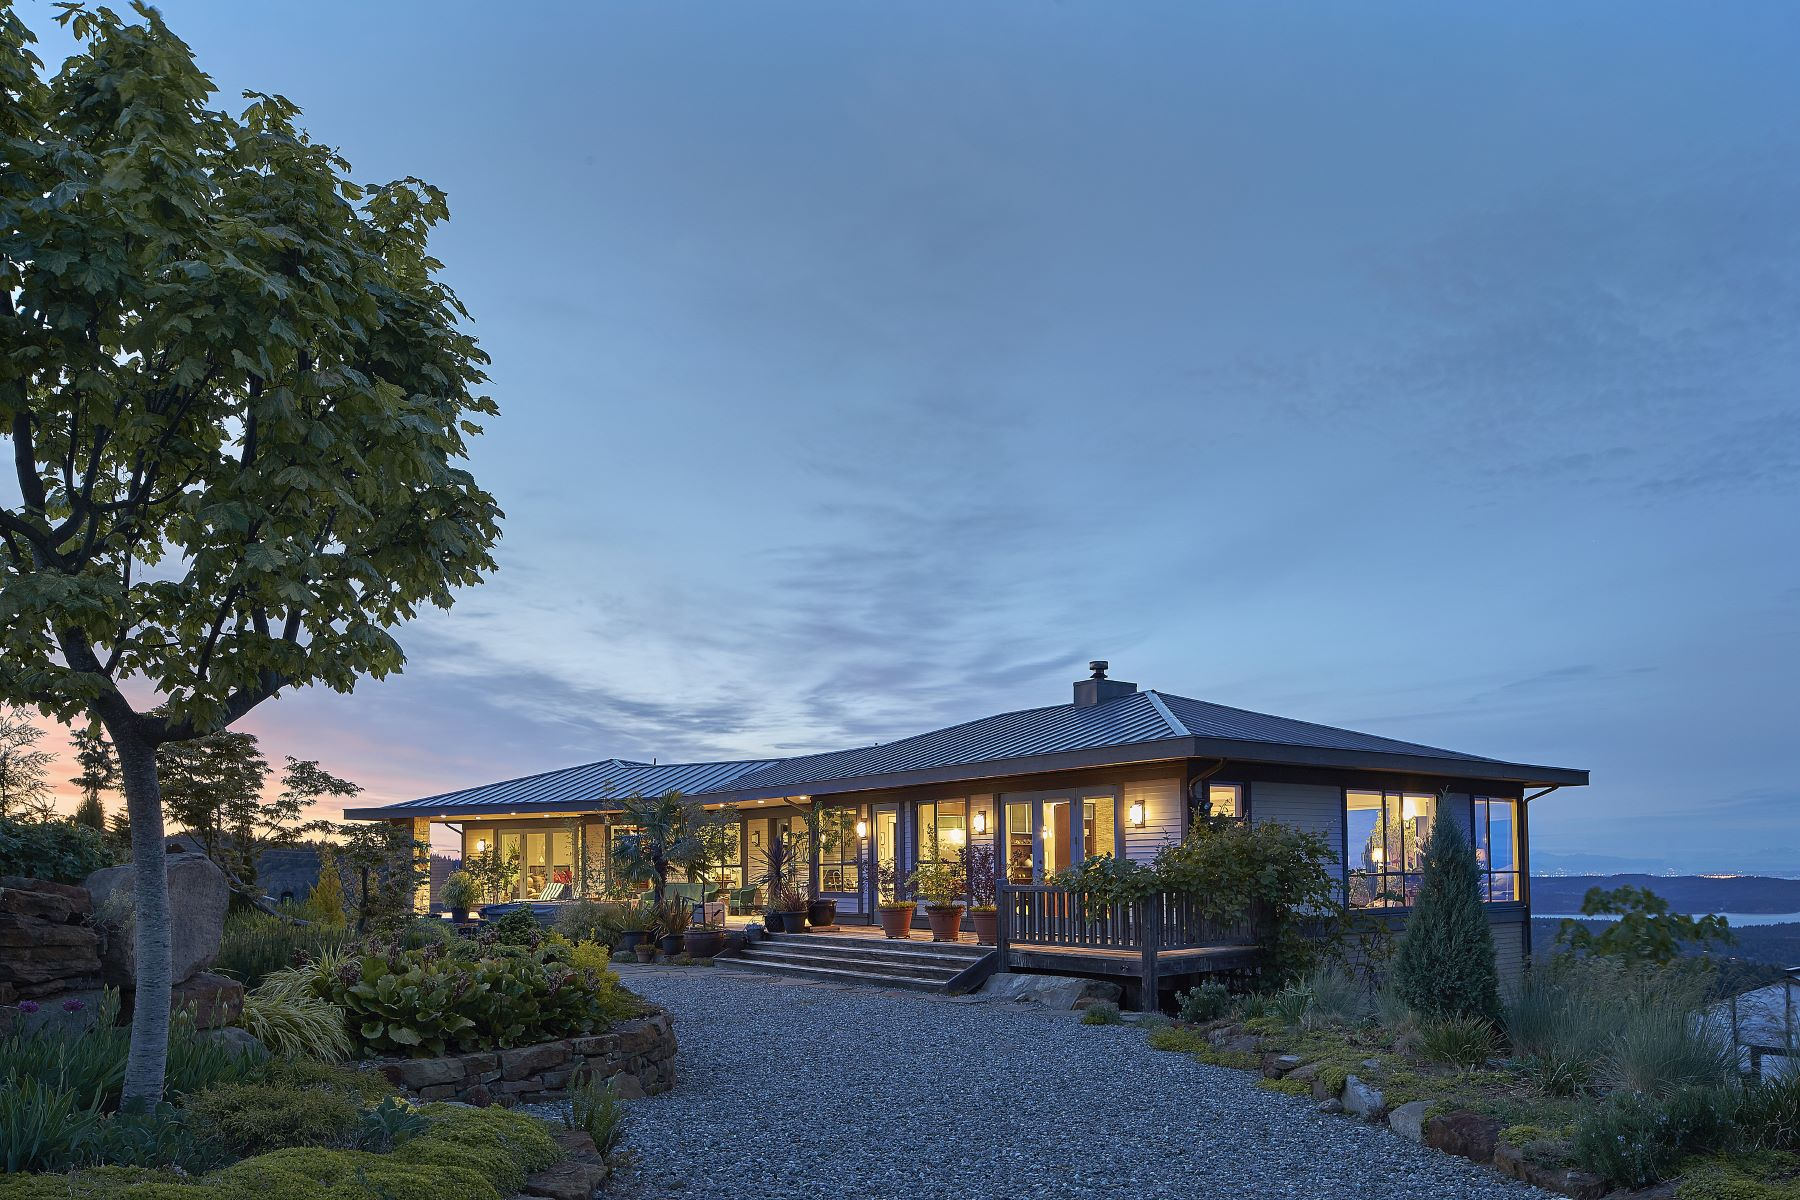 Casa Unifamiliar por un Venta en 160 Acre Oceanview Estate Tara Hall Farm, Salt Spring Island, British Columbia, V8K2H2 Canadá